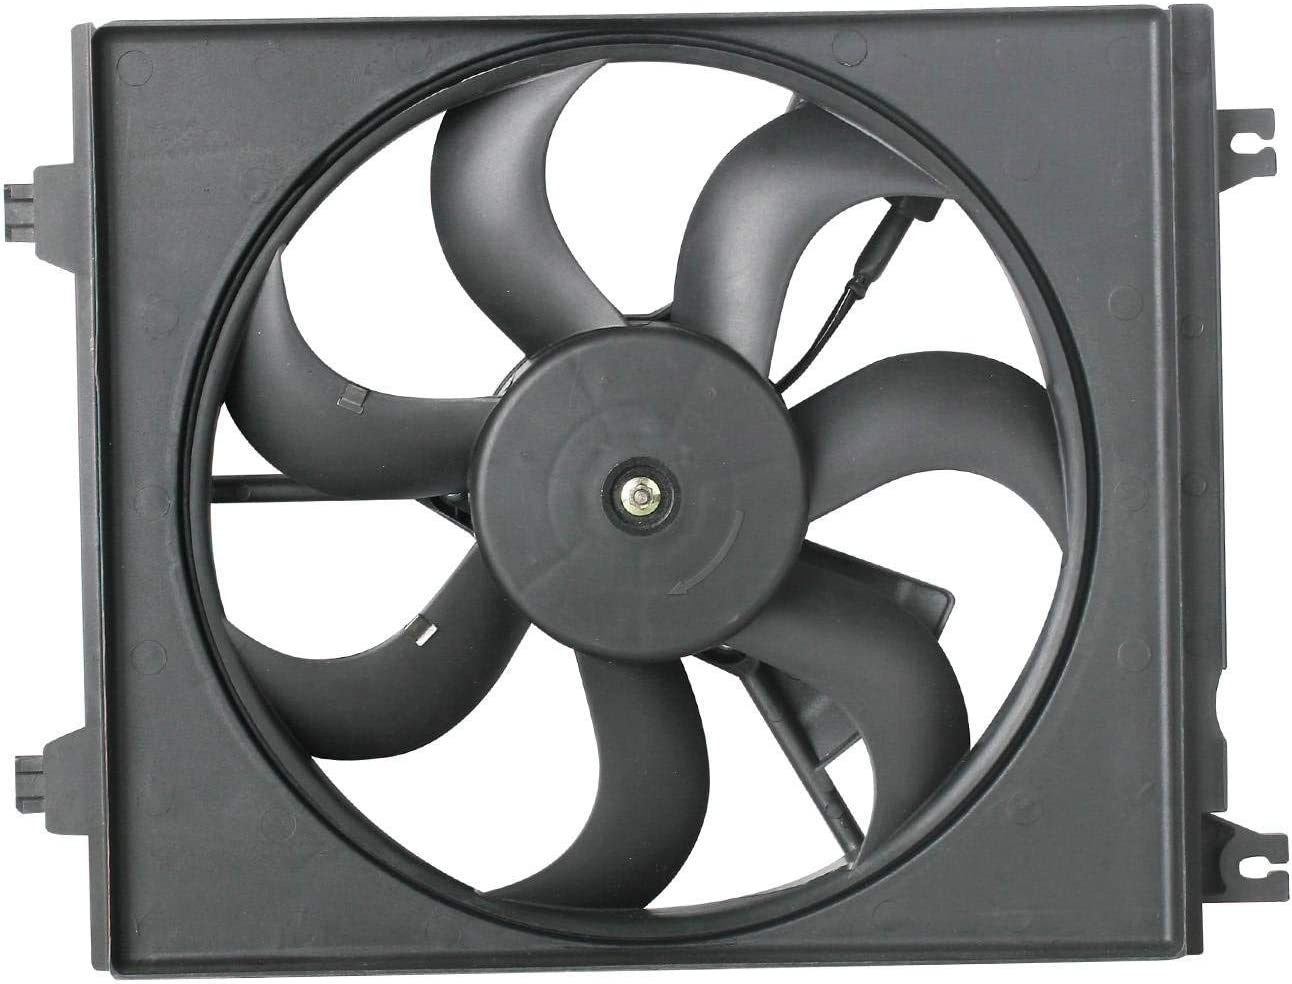 TOPAZ 97730-2F000 Passenger Side A/C Condenser Cooling Fan Assembly for Kia Spectra 2004-2009 2.0L